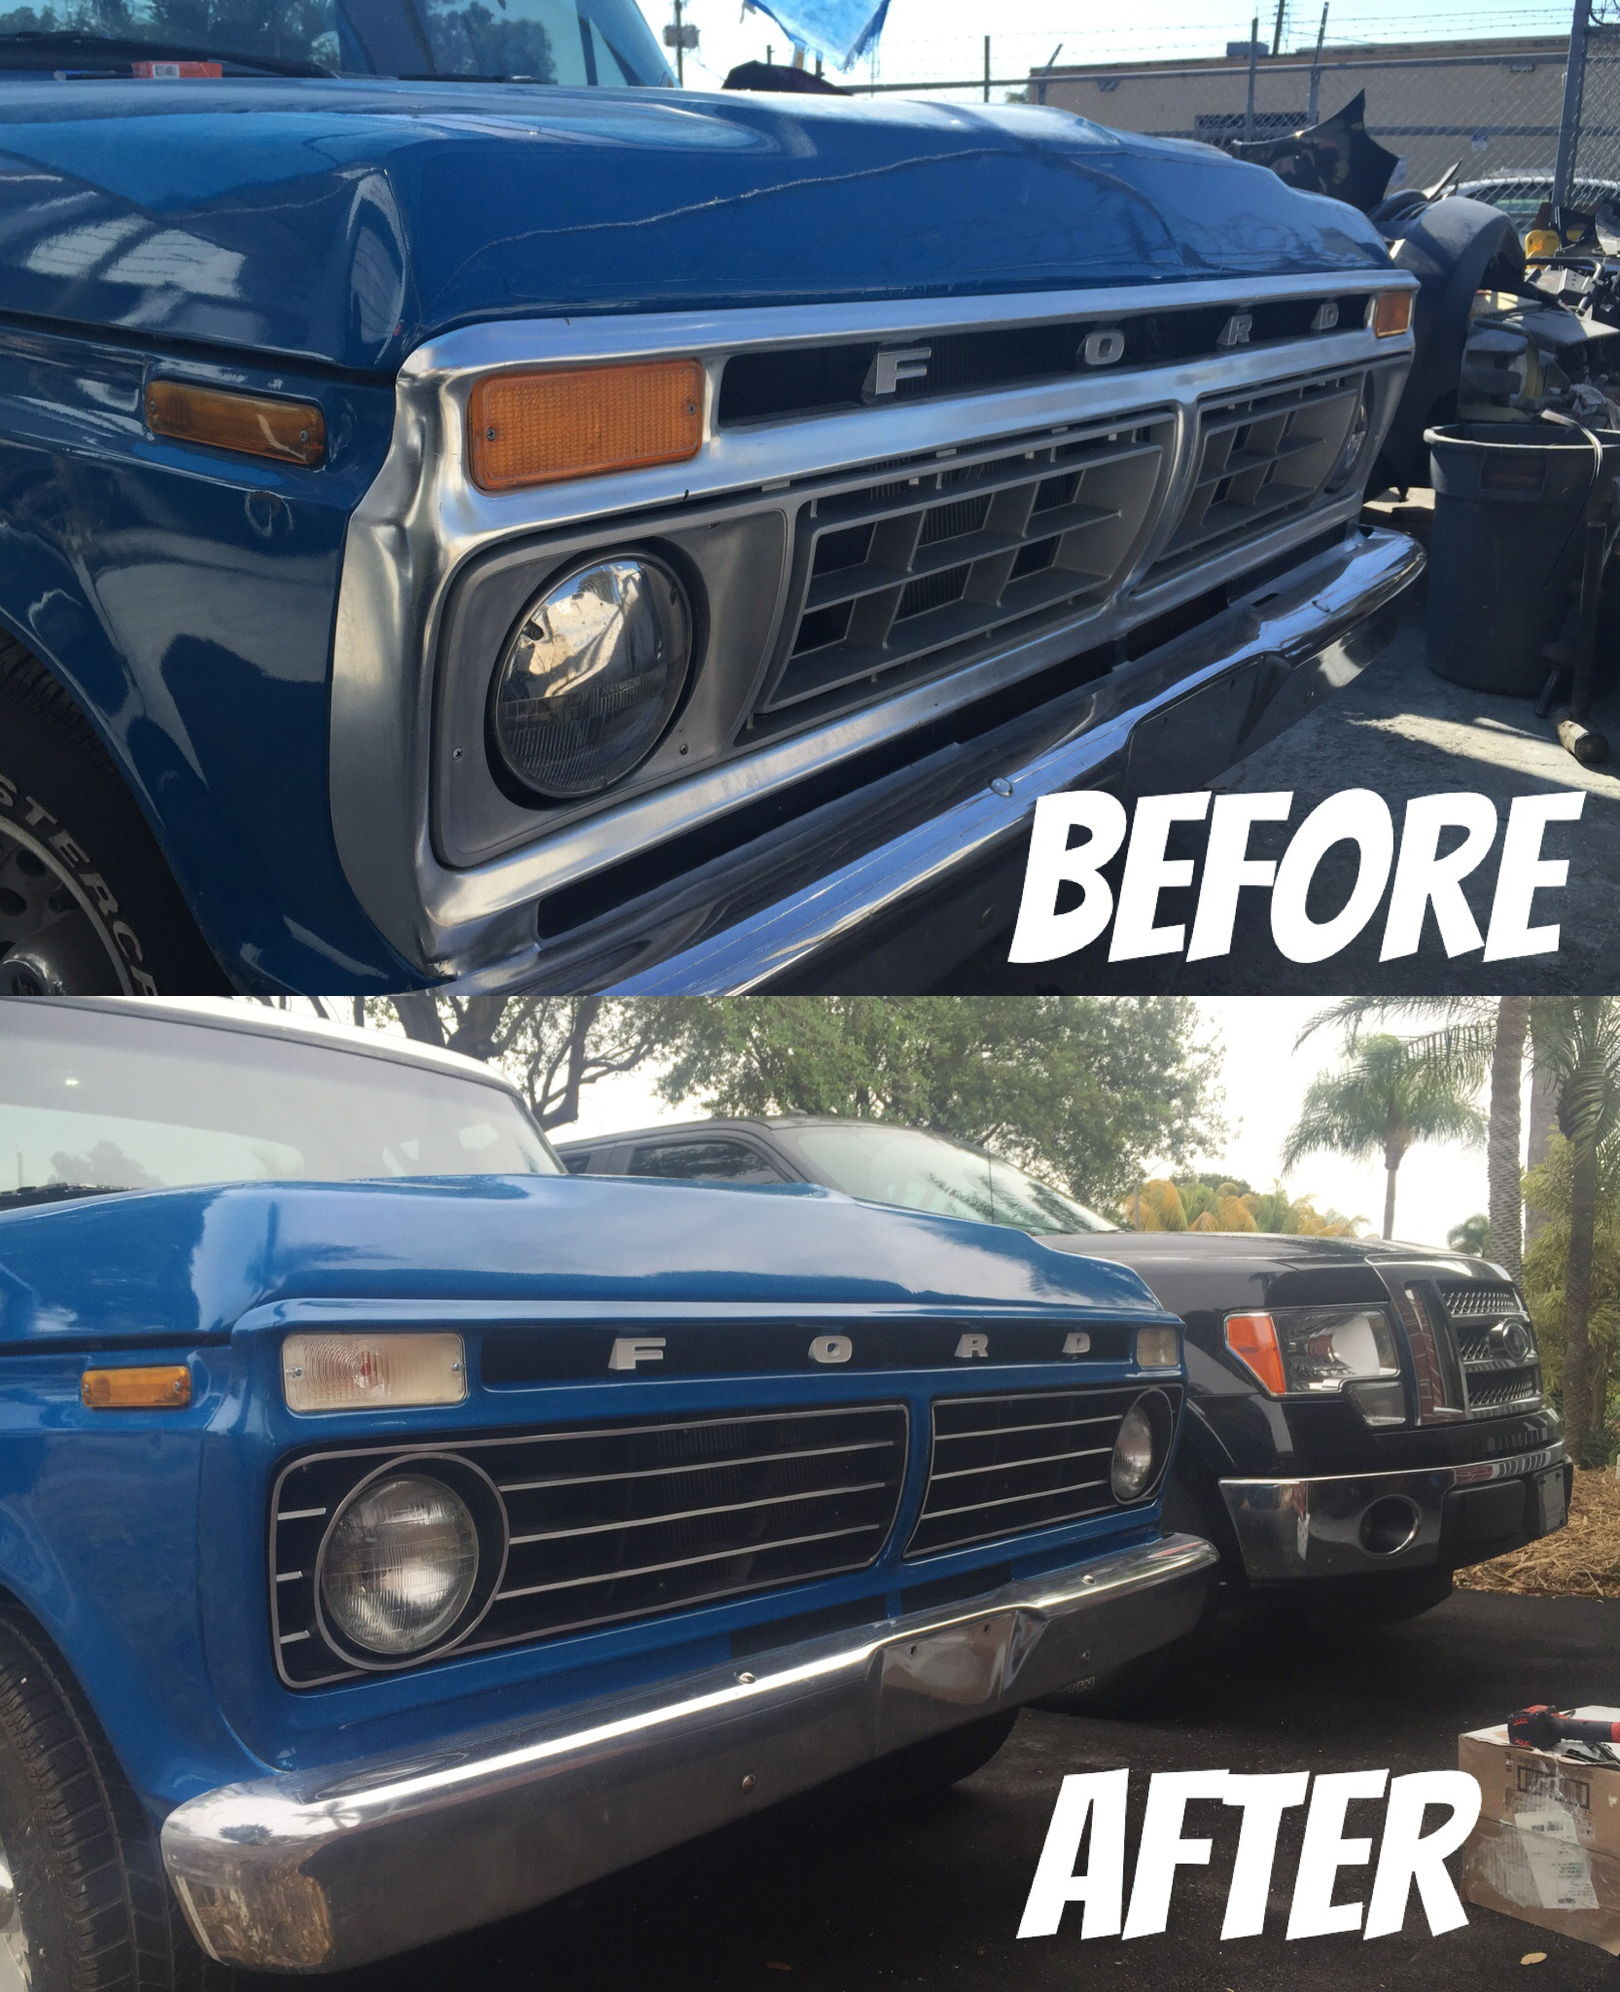 The final product including a 75 grill and turn signals